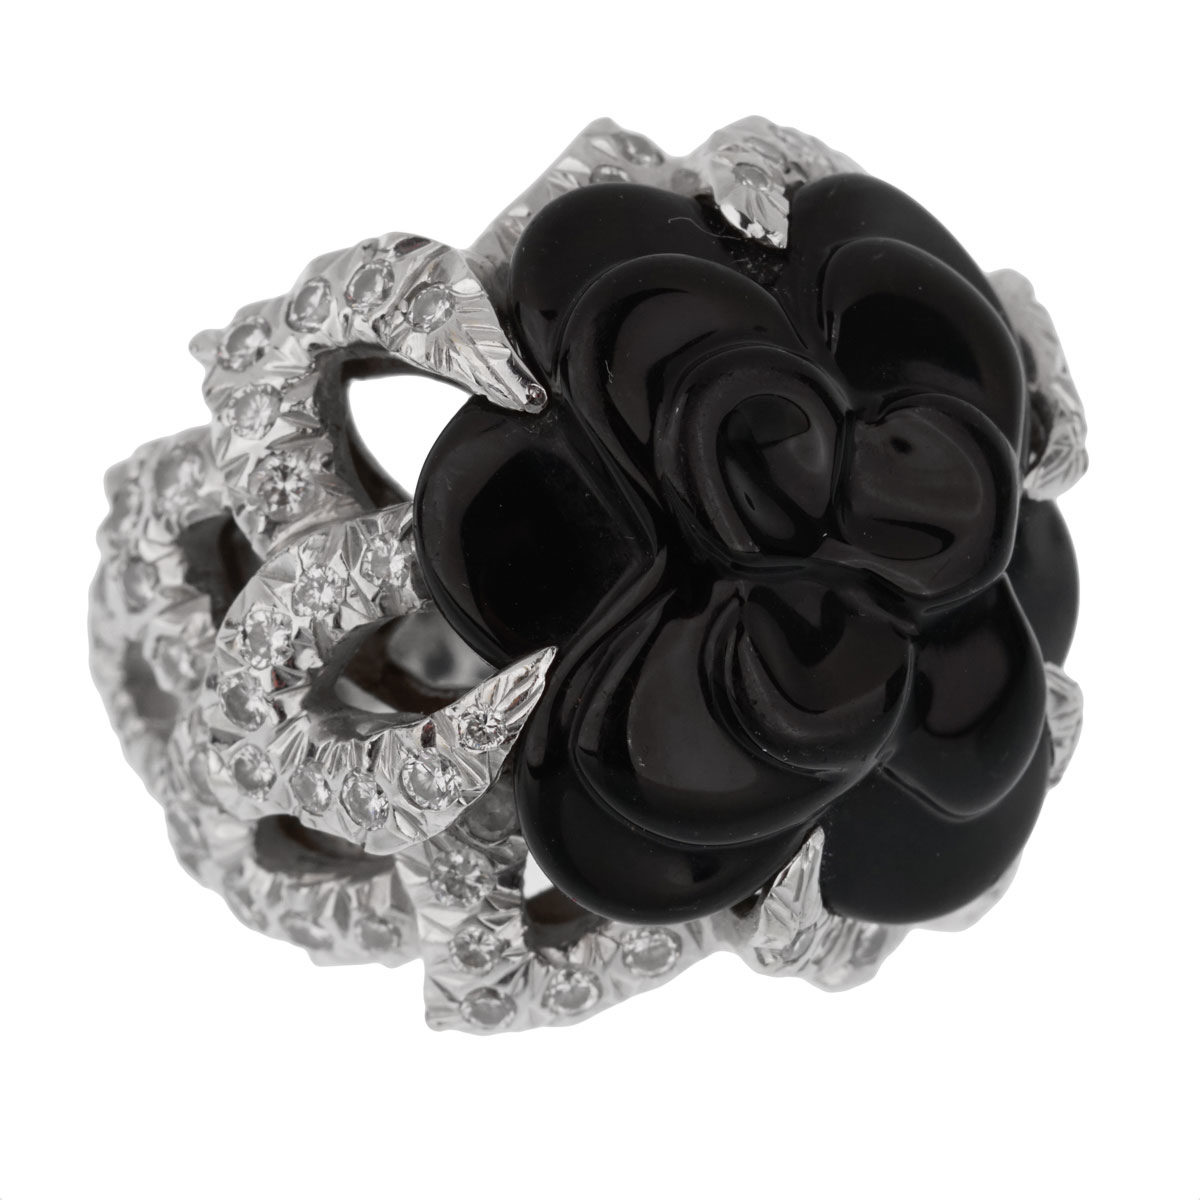 Chanel Camelia Diamond Onyx White Gold Ring - Chanel Jewelry